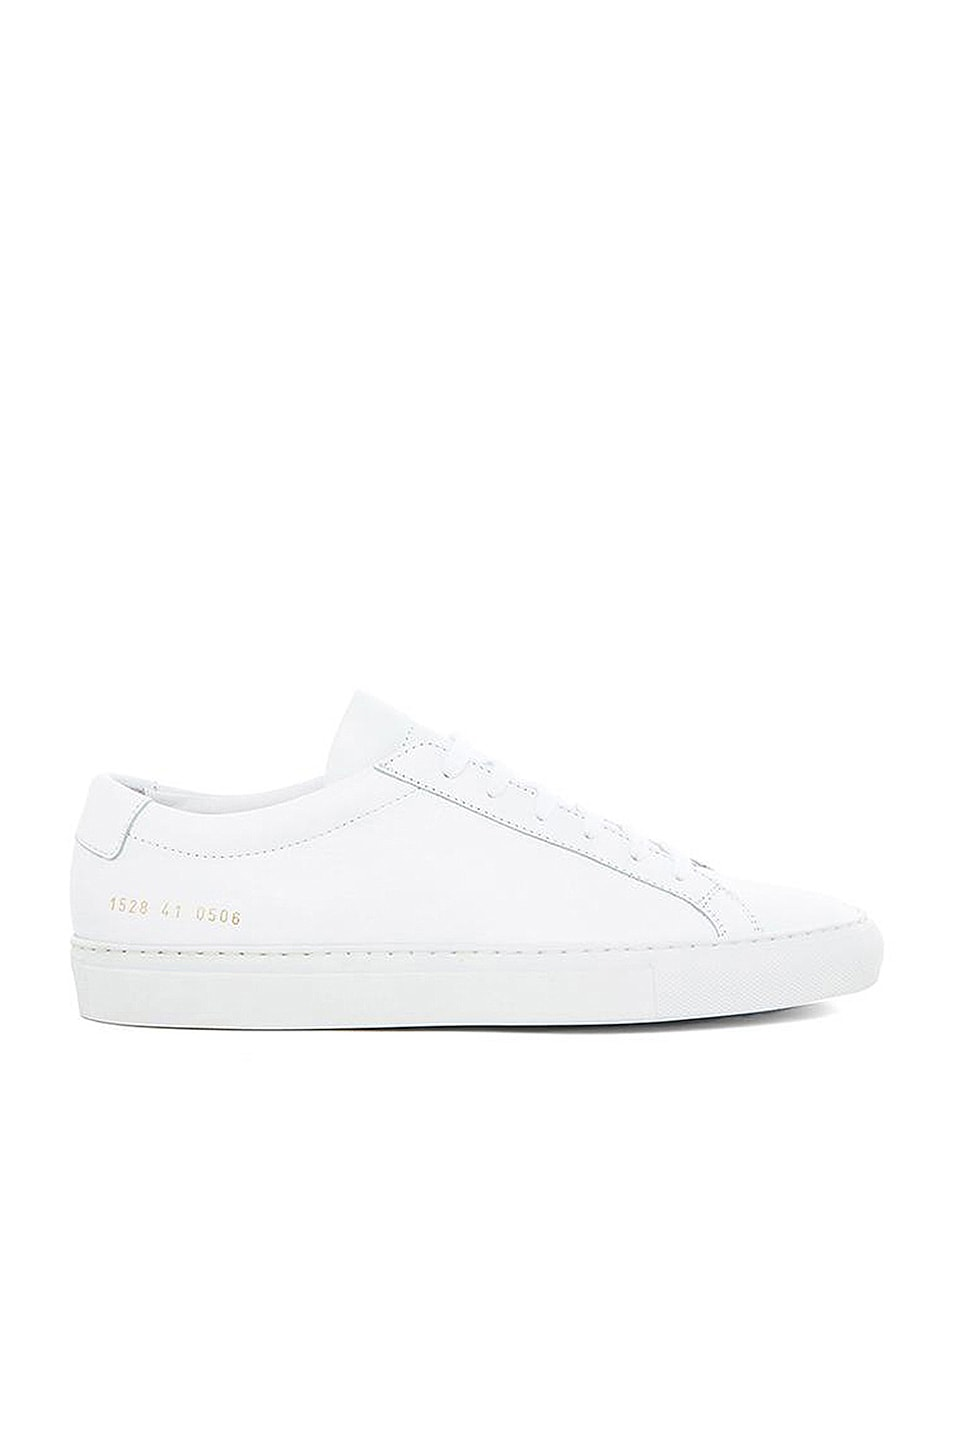 Image 1 of Common Projects Original Leather Achilles Low in White